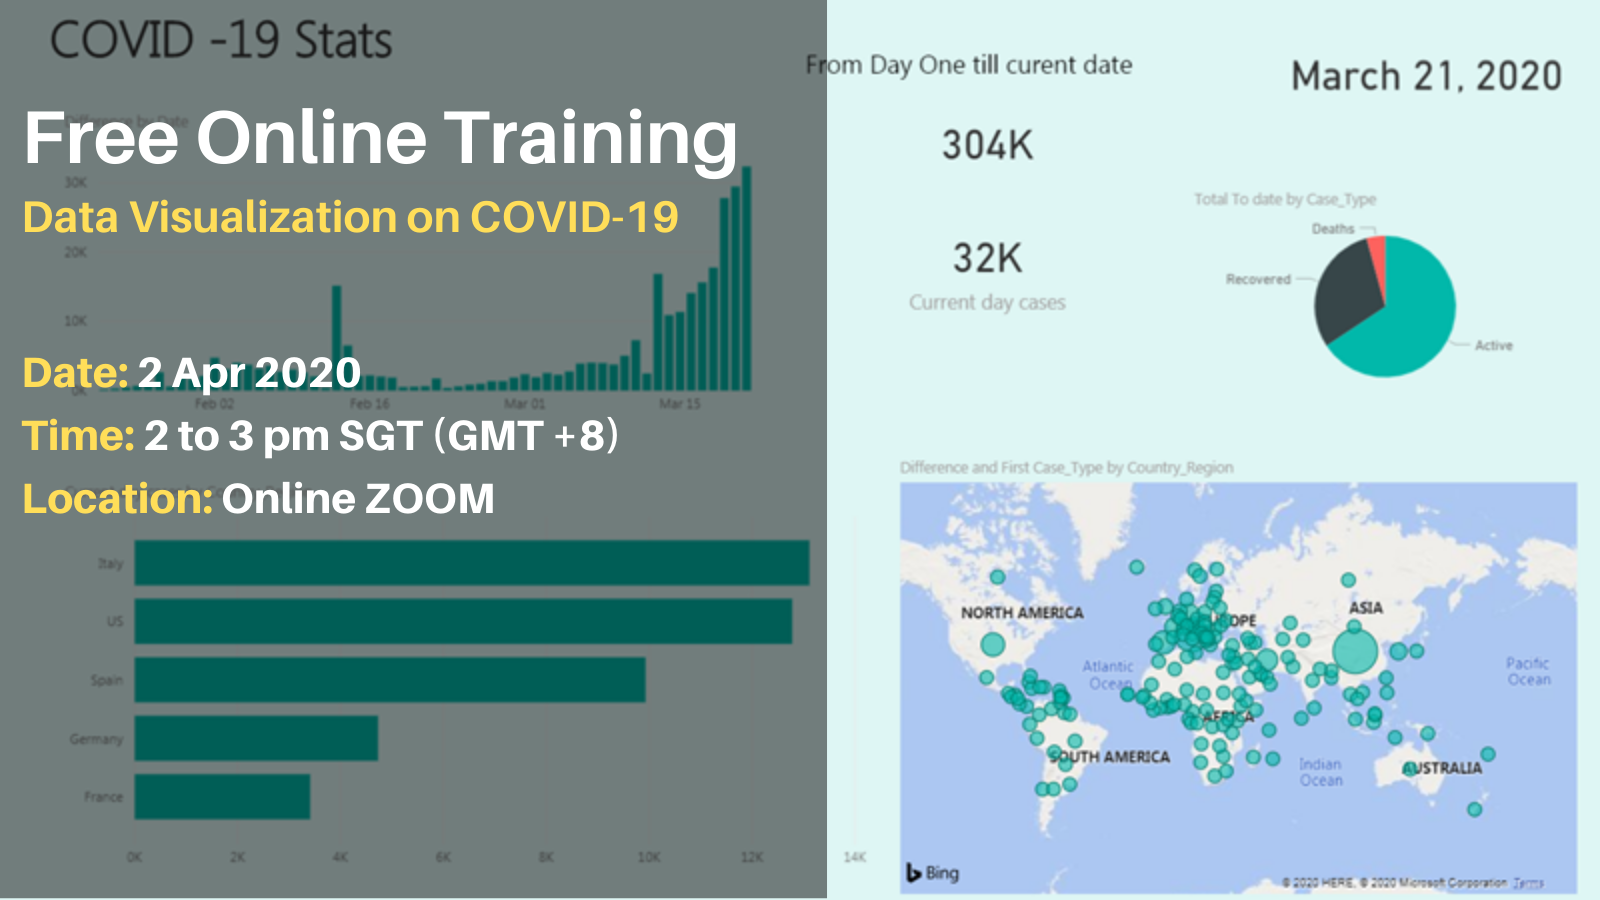 Online Training on Data Visualization